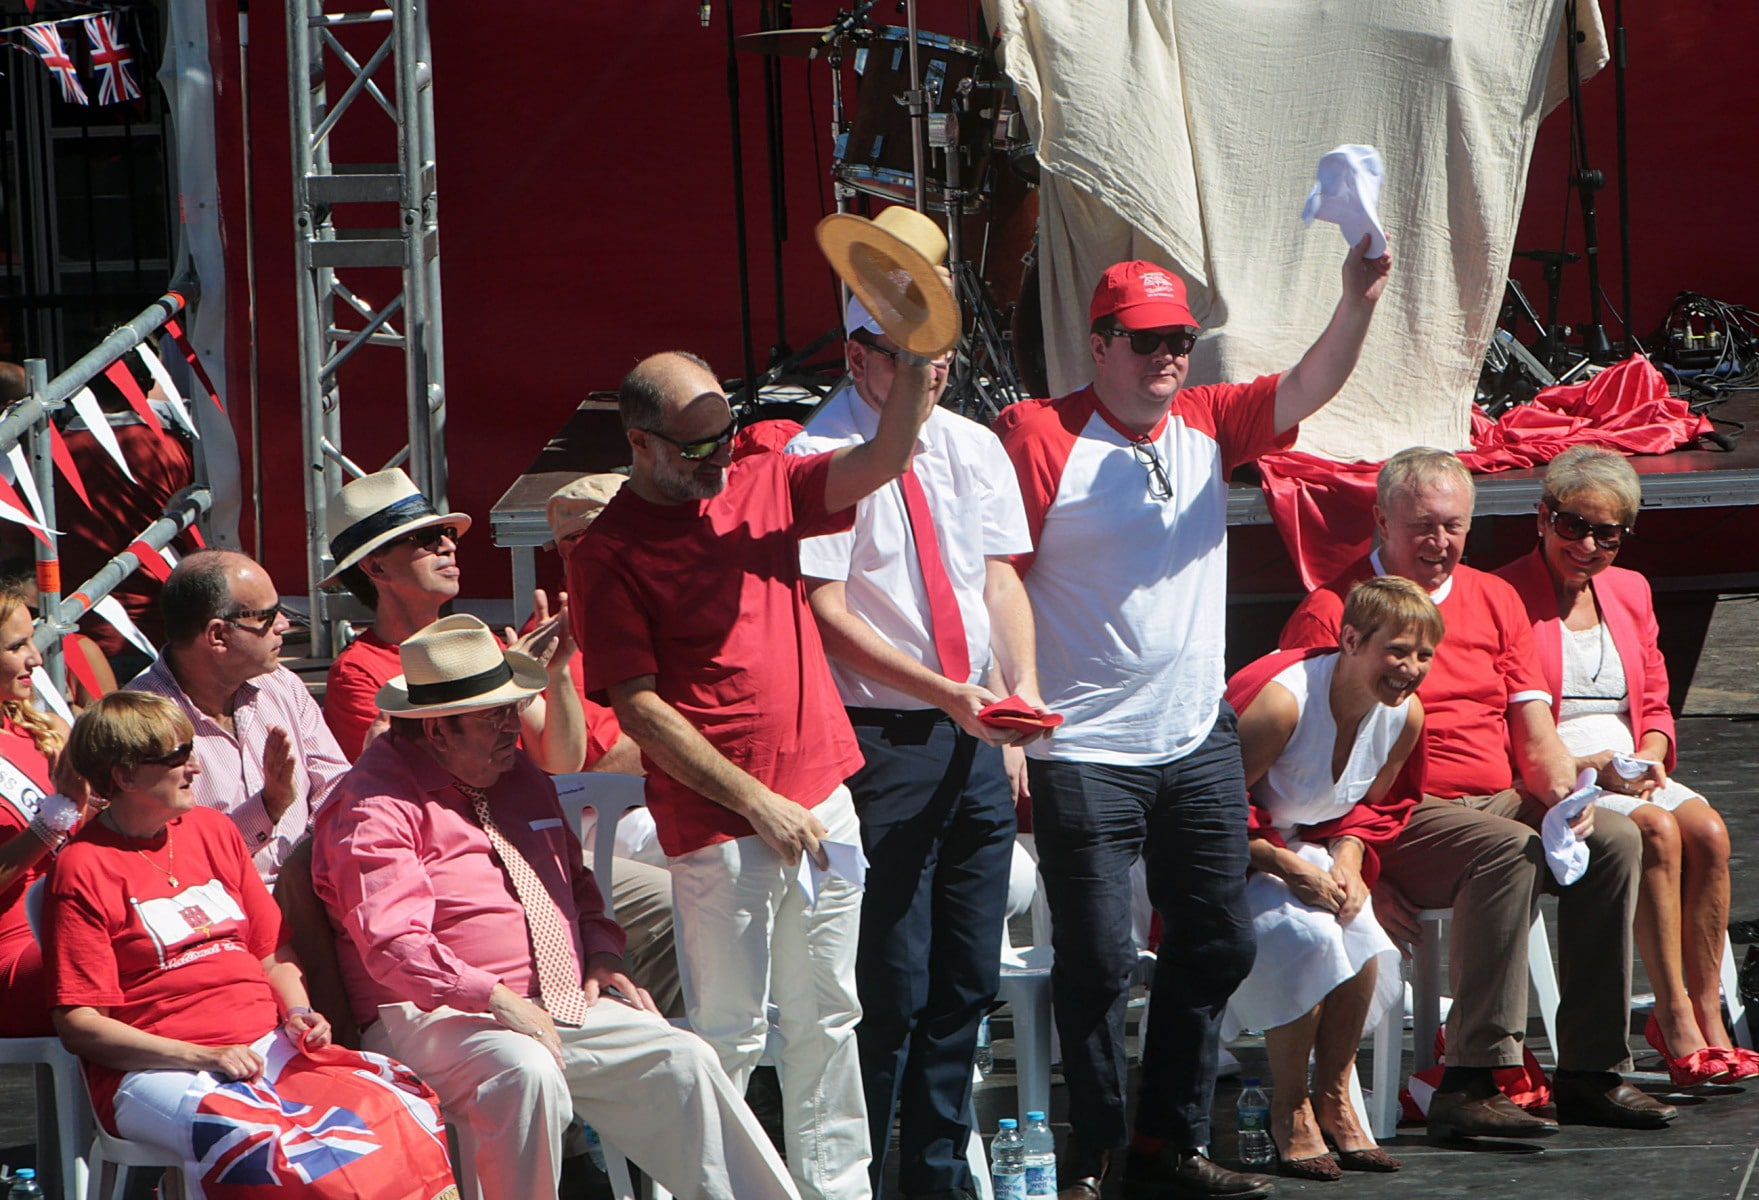 160910-national-day-gibraltar-2016-4_29605162765_o